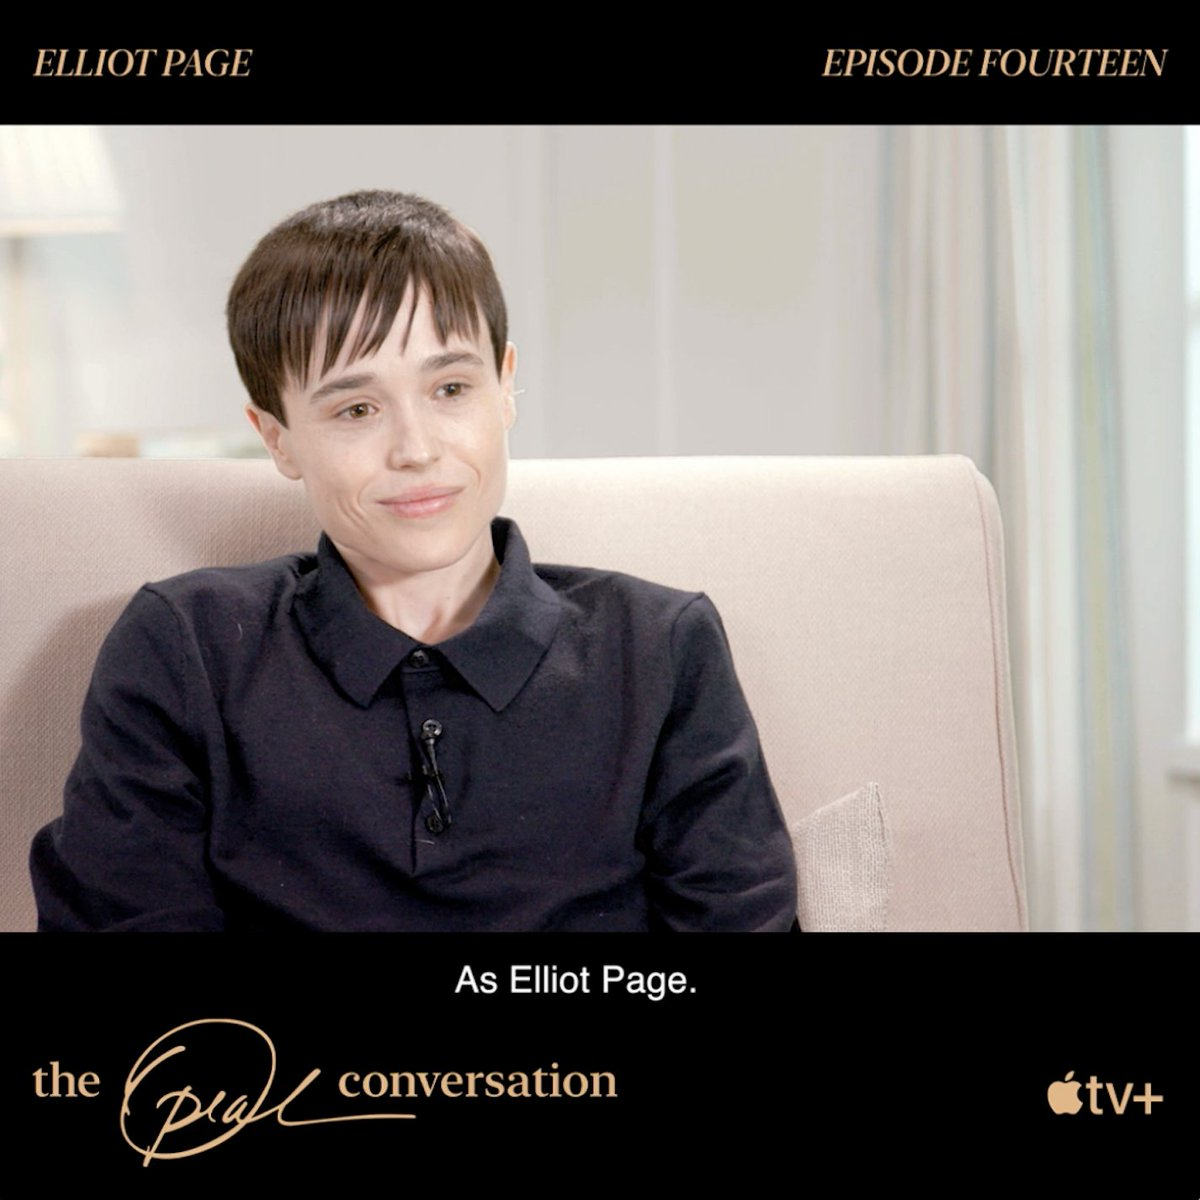 Since announcing his transition @TheElliotPage has yet to sit down for an on-camera interview, until now. He speaks with @Oprah about living authentically and the struggles he faced along the way. Watch #TheOprahConversation now on Apple TV+